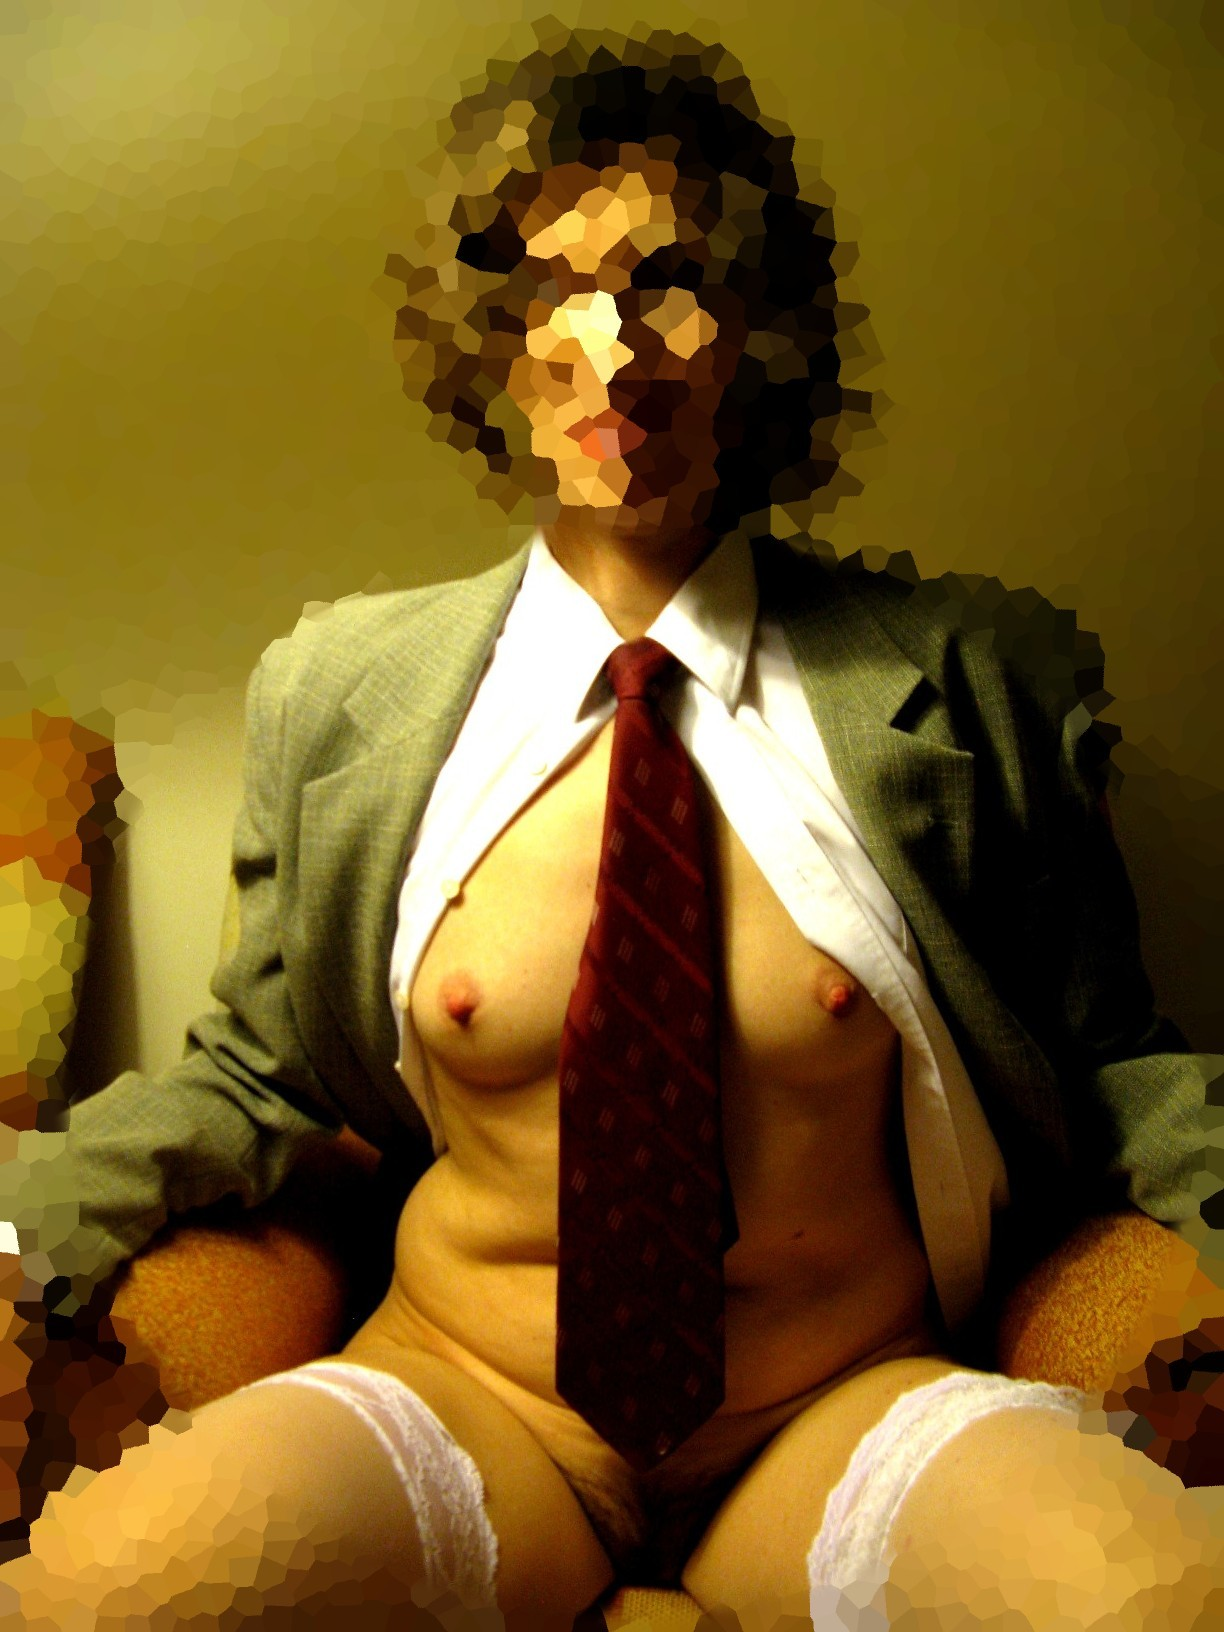 Office lady 3, November 2011